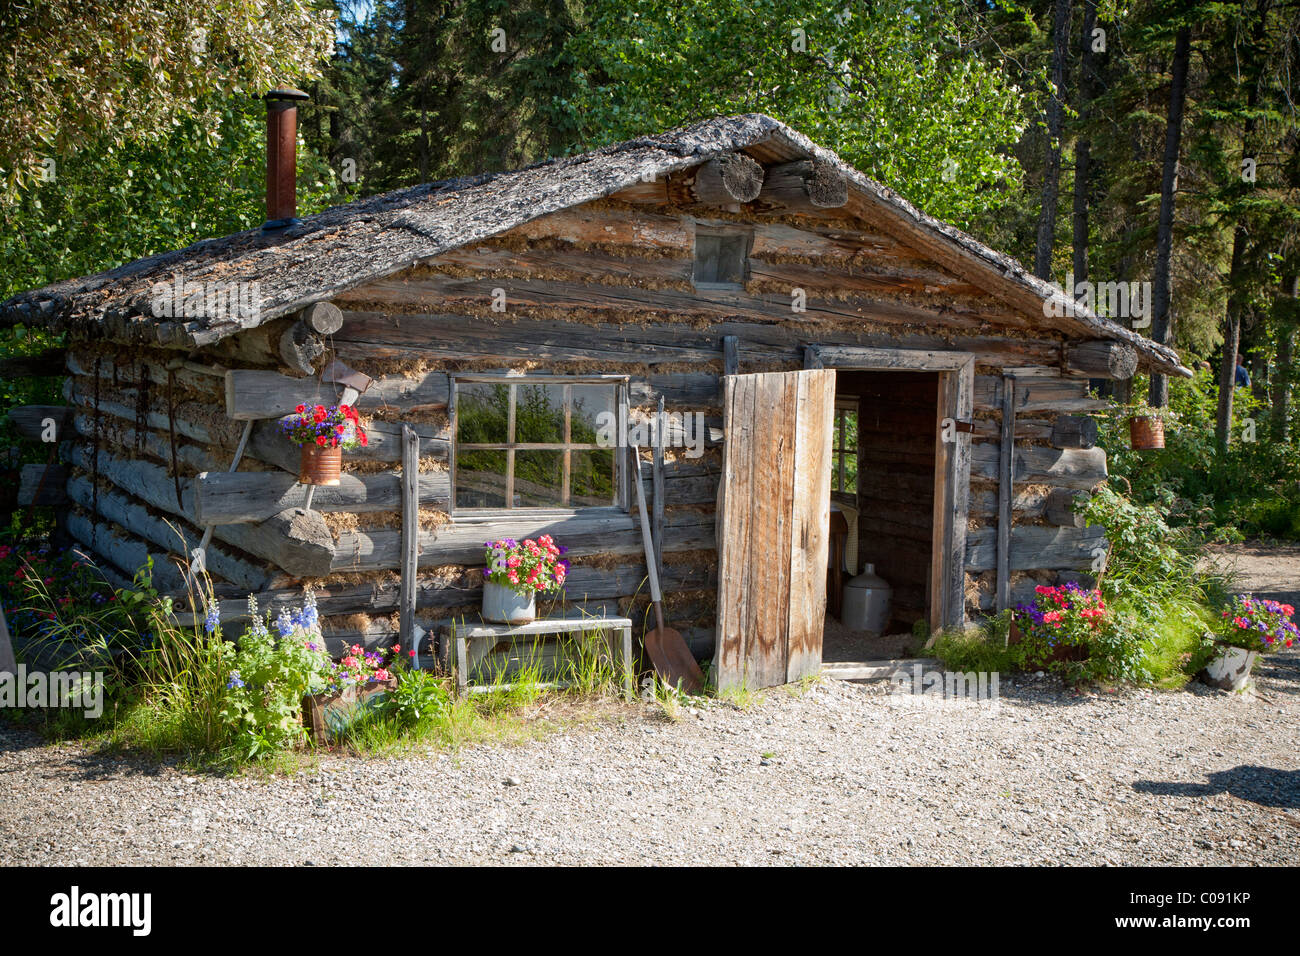 Marvelous photograph of Stock Photo Trapper's style log cabin at Chena Indian Village on the  with #495E24 color and 1300x956 pixels